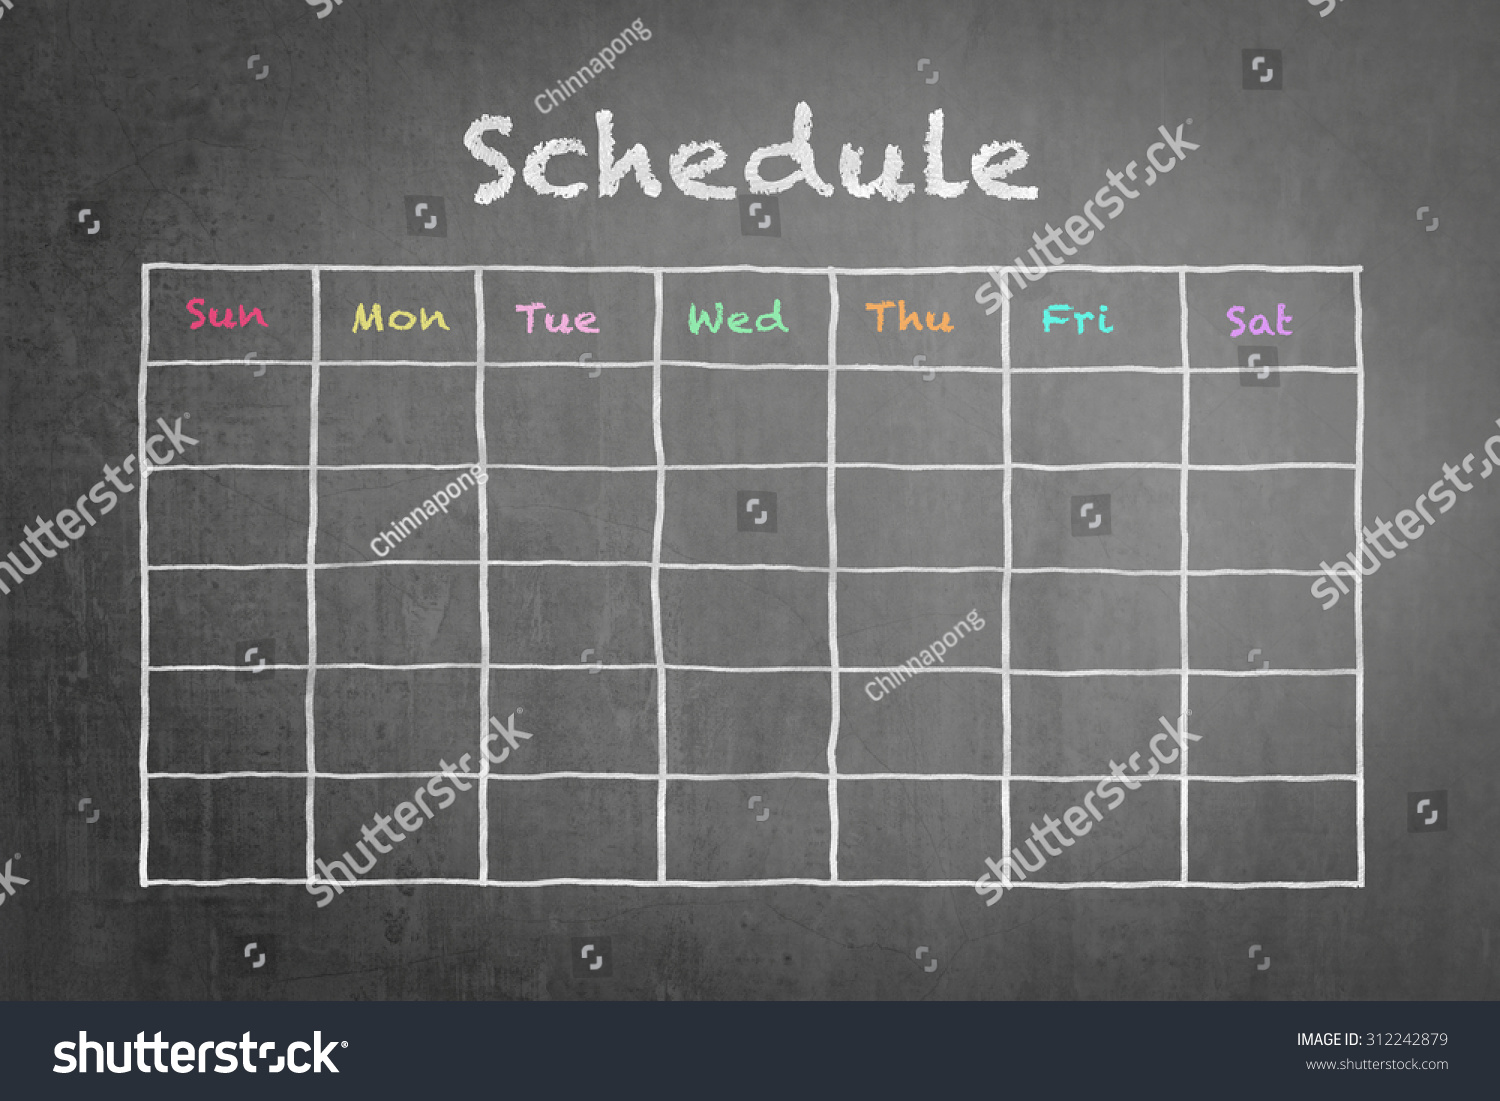 hand white chalk doodle sketch blank stock photo 312242879 hand white chalk doodle sketch of blank monthly grid timetable schedule on black chalkboard background